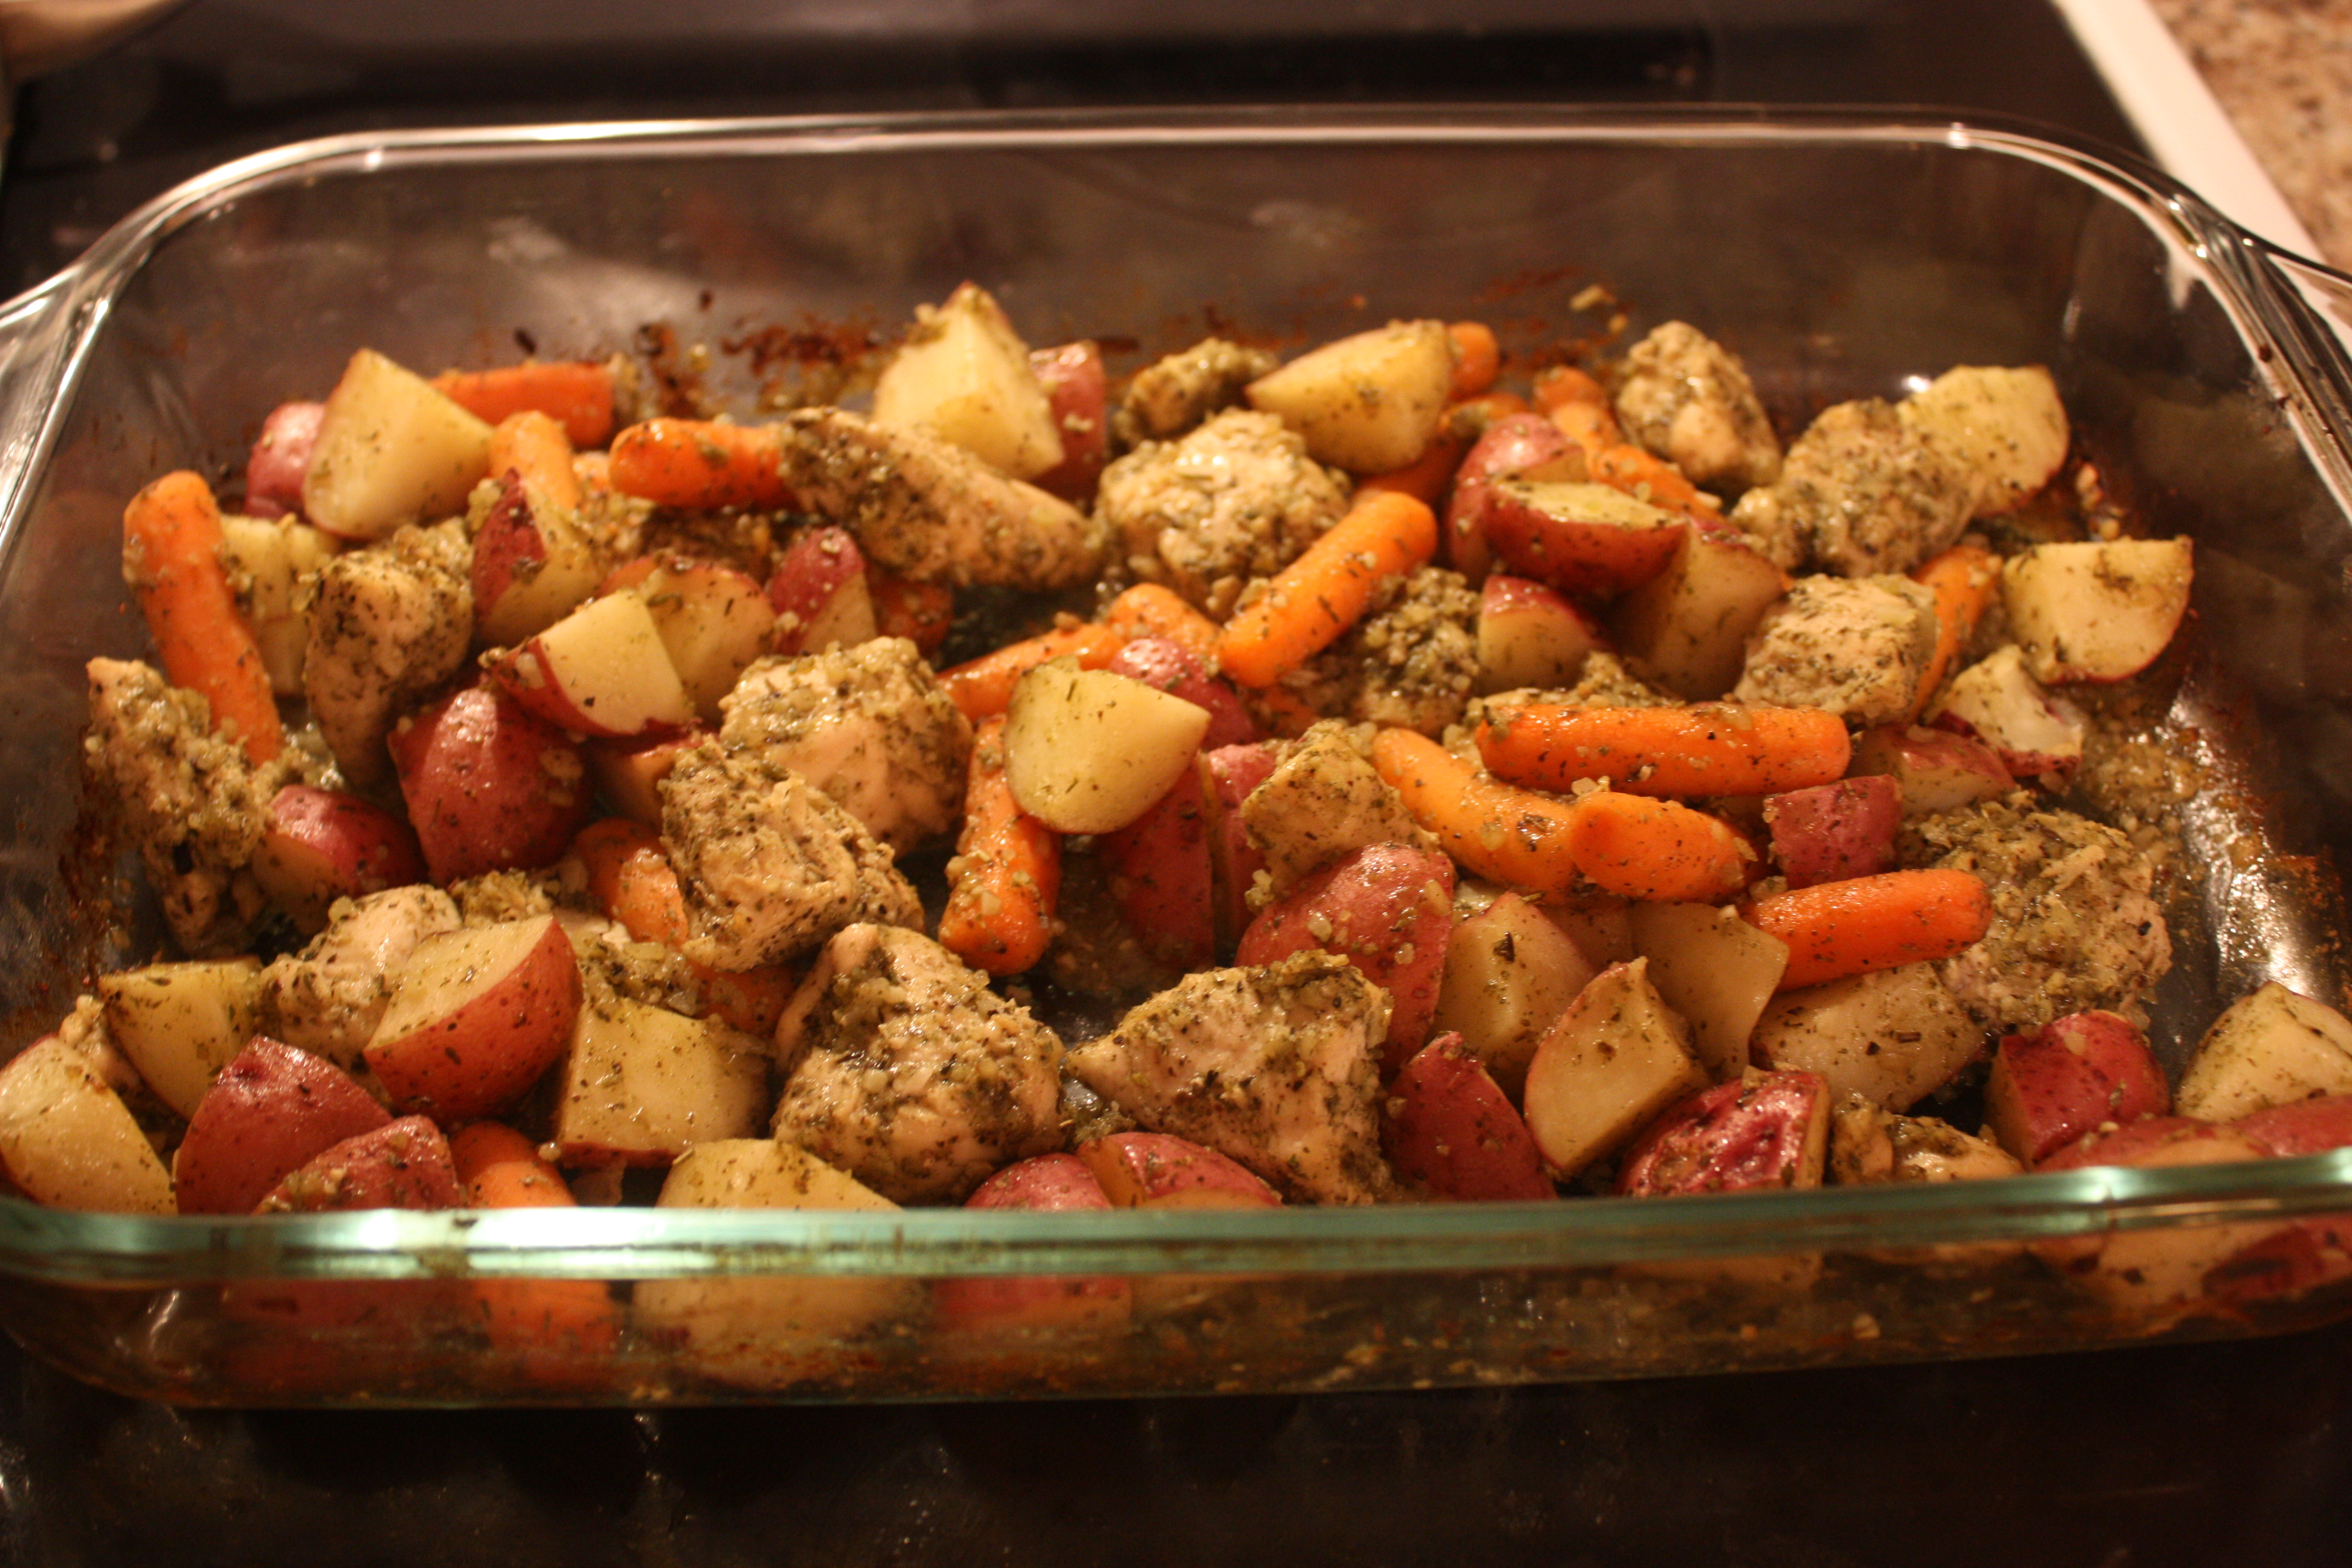 Baked Chicken and Veggies